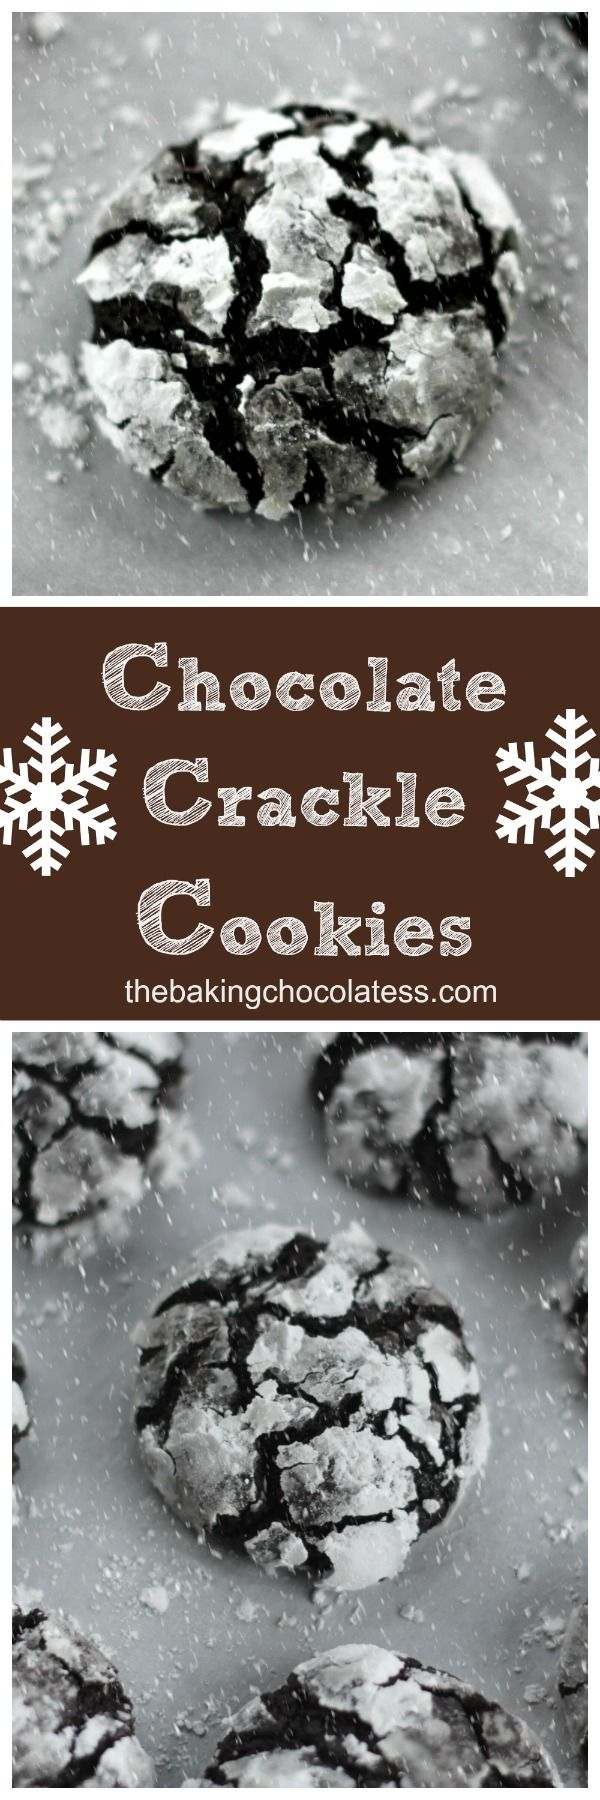 Christmas Chocolate Crackle Cookies via @https://www.pinterest.com/BaknChocolaTess/